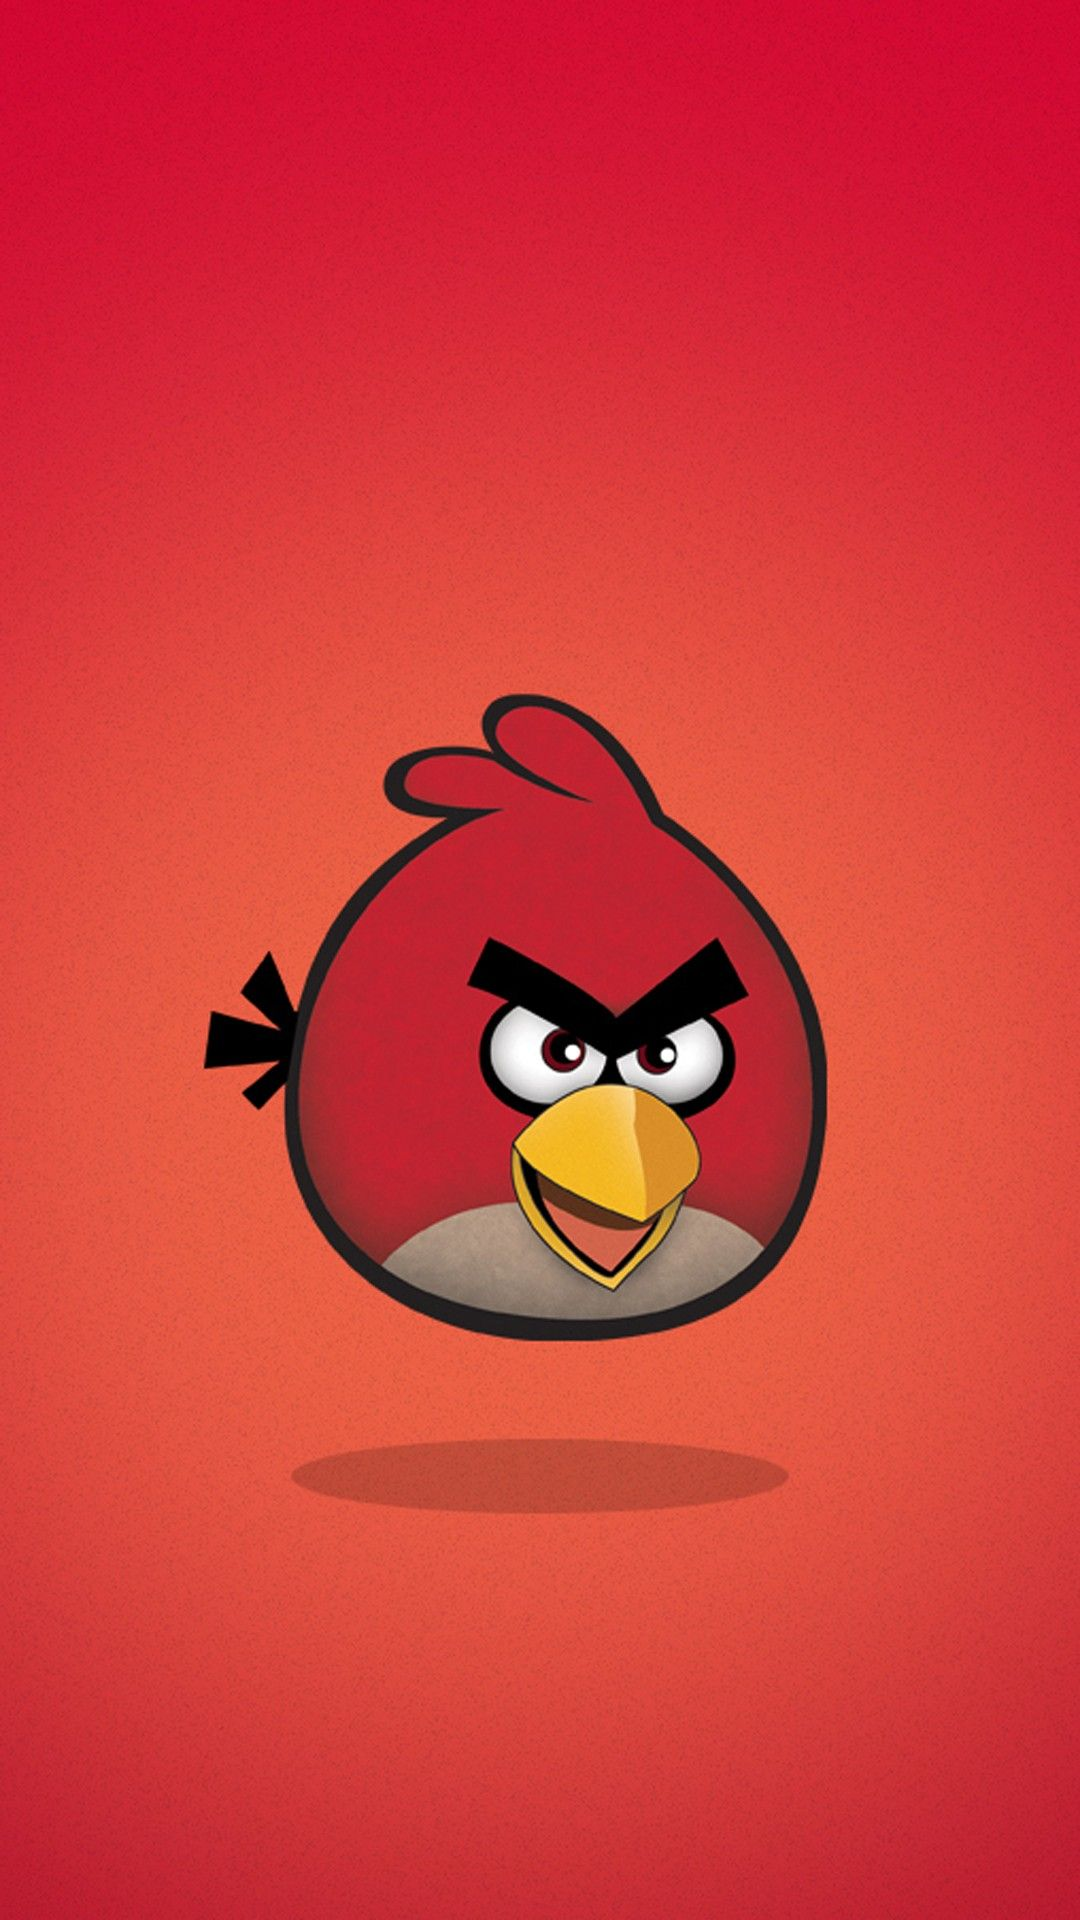 Angry Birds Red Smartphone Wallpaper And Lockscreen Hd Papel De Parede Android Papeis De Parede Papeis De Parede Para Iphone